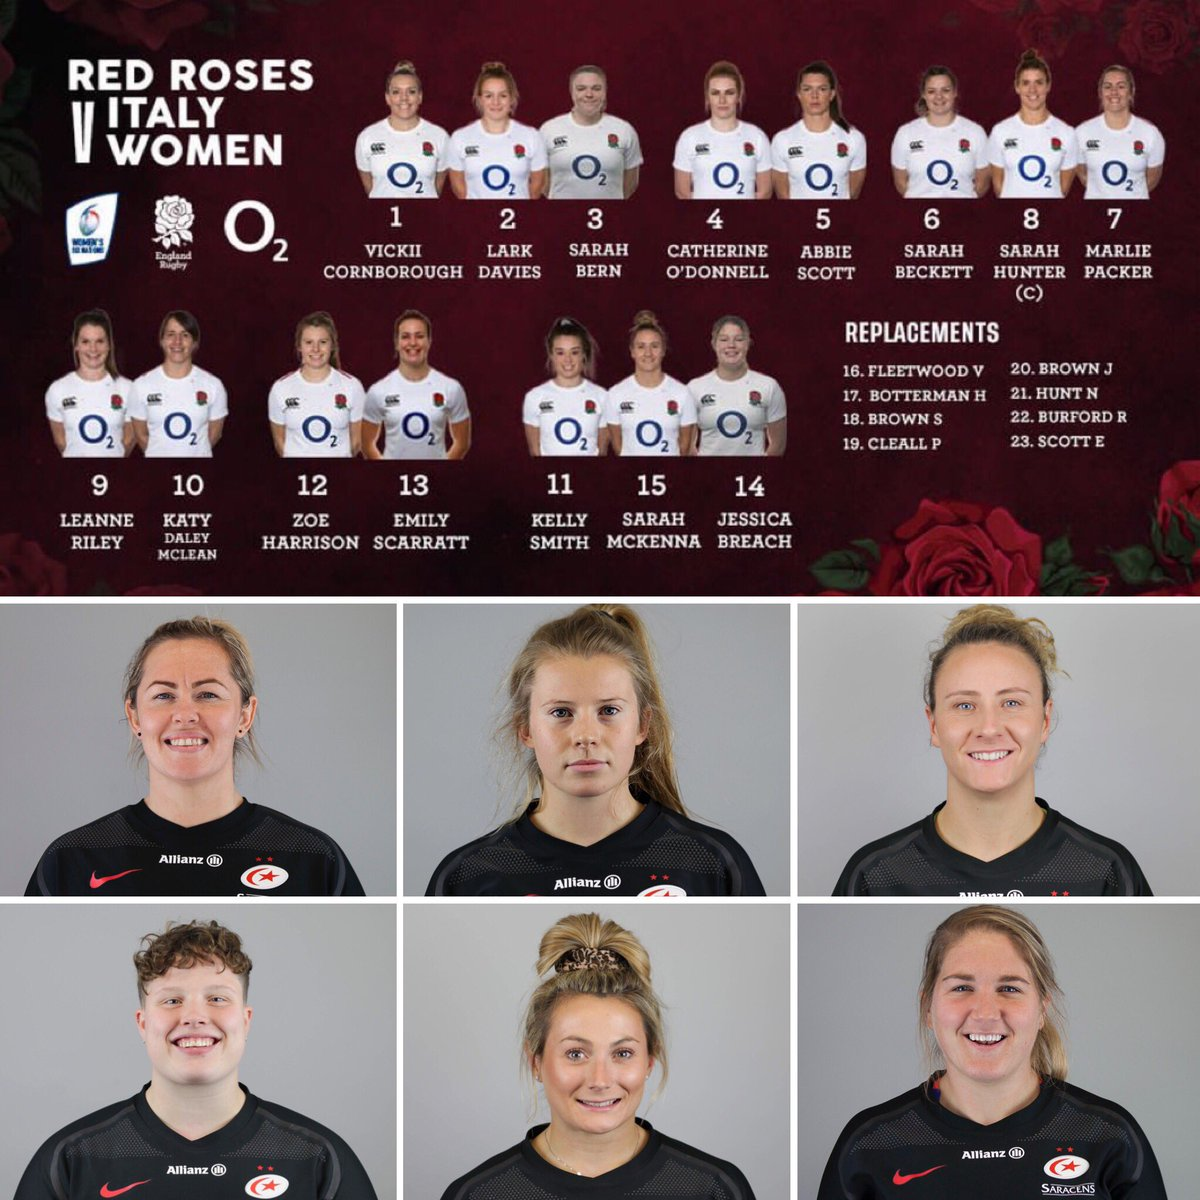 #RugbySaracens's photo on Six Nations